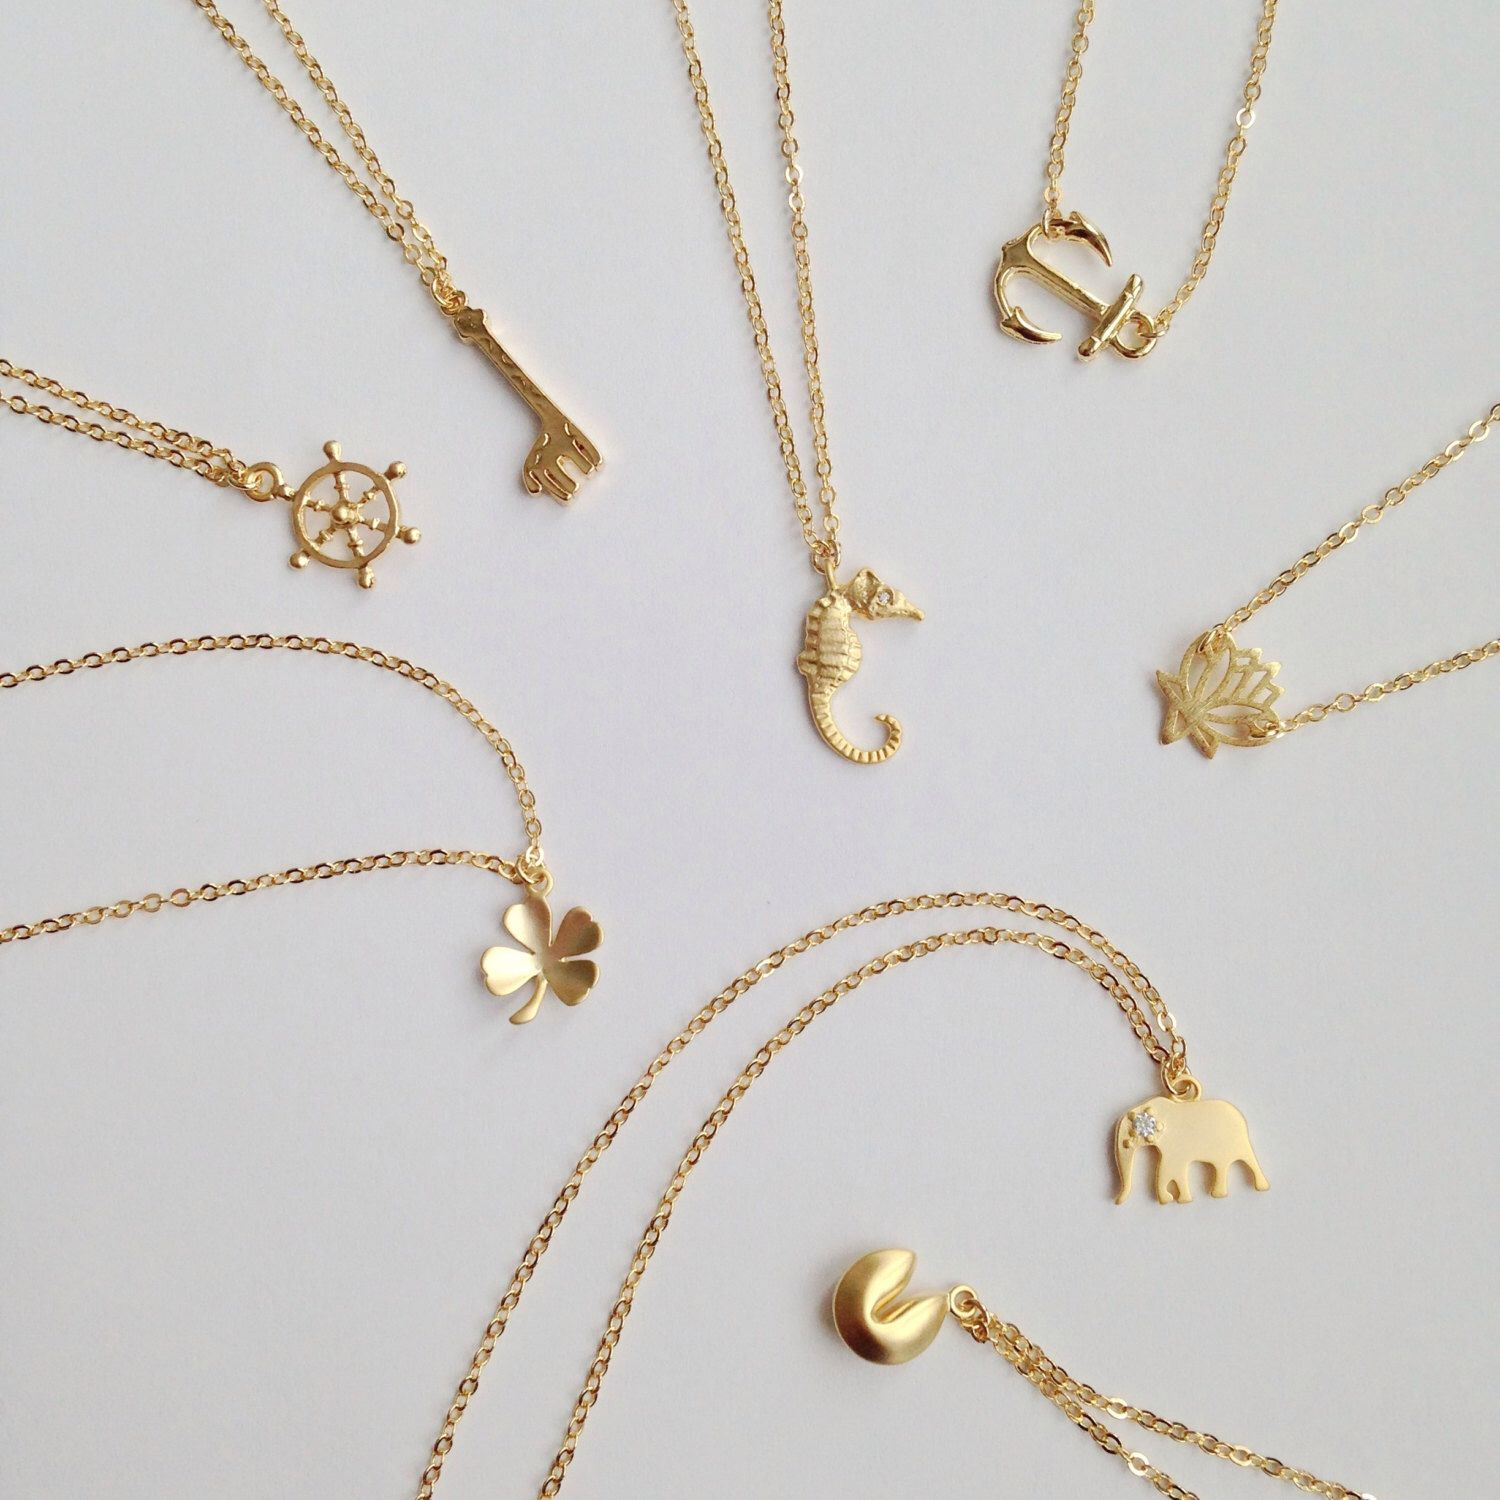 Delicate Minimal Gold Necklace choose your simple pendant